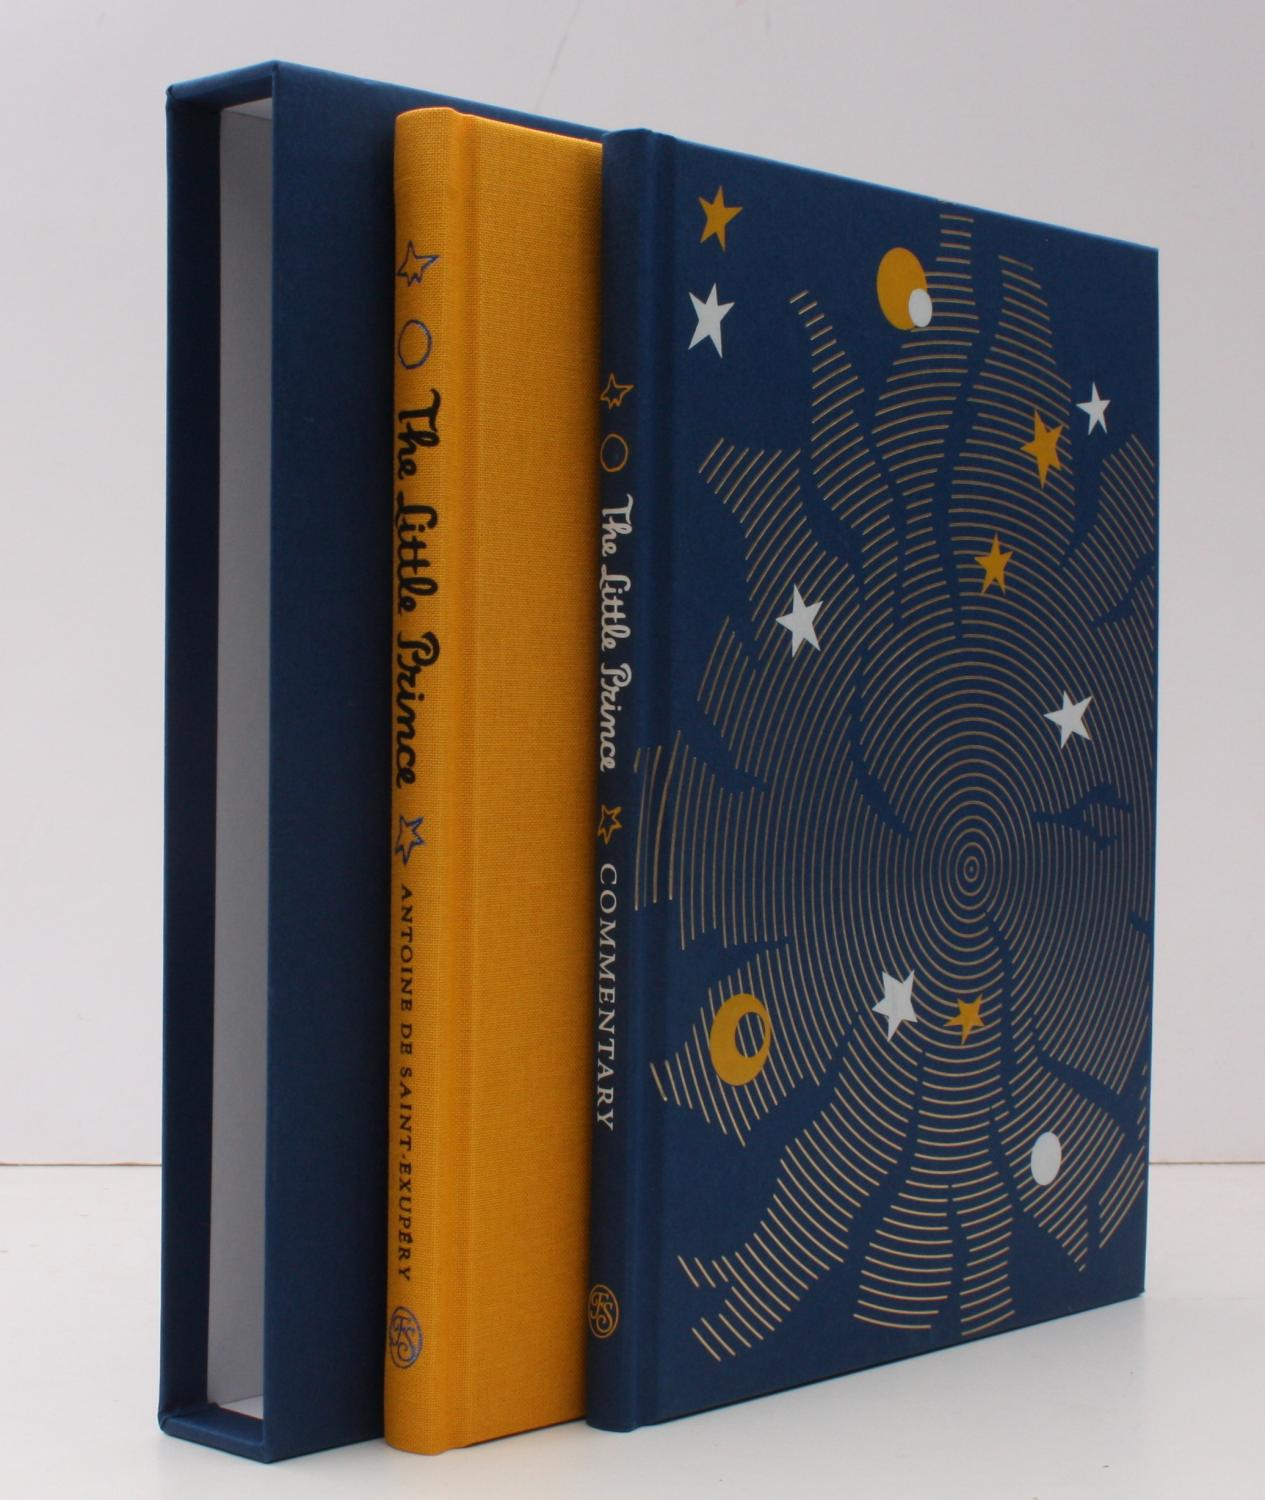 The Little Prince Introduced By Stacy Schiff Translated By Richard Howard Commentary Volume By Christine Nelson Original Illustrations By The Author Fine Copy In Publisher S Blocked Slip Case By Antoine De Saint Exupery 2017